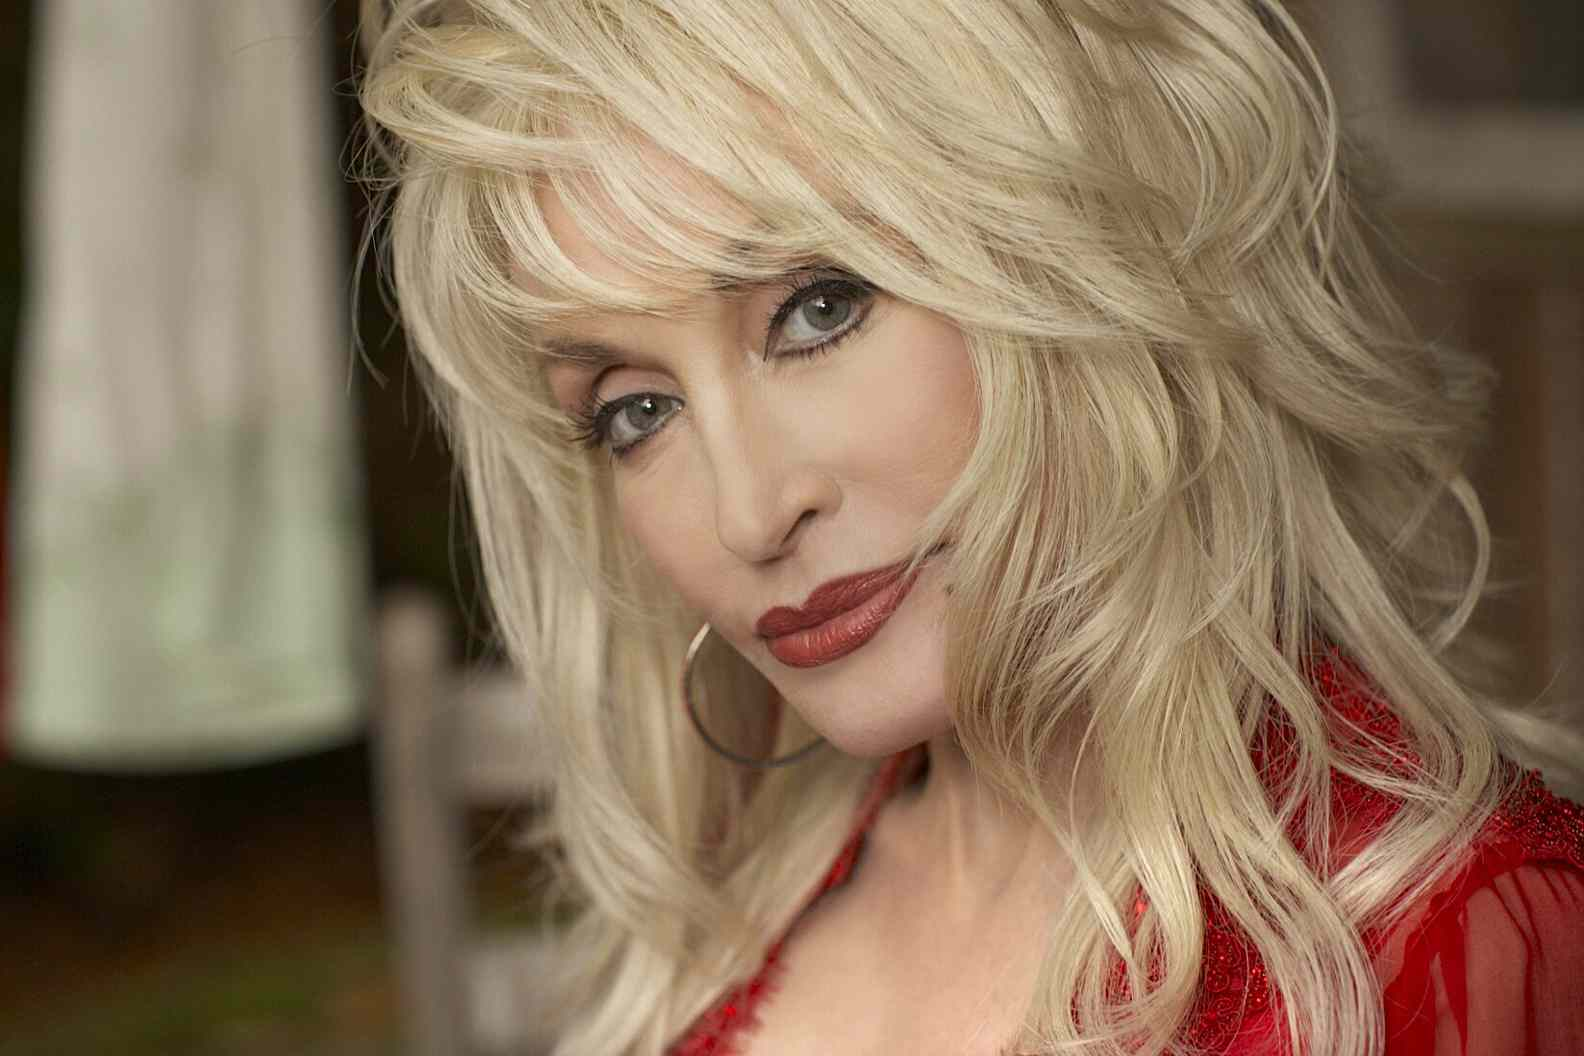 Fonds d'écran Dolly Parton : tous les wallpapers Dolly Parton